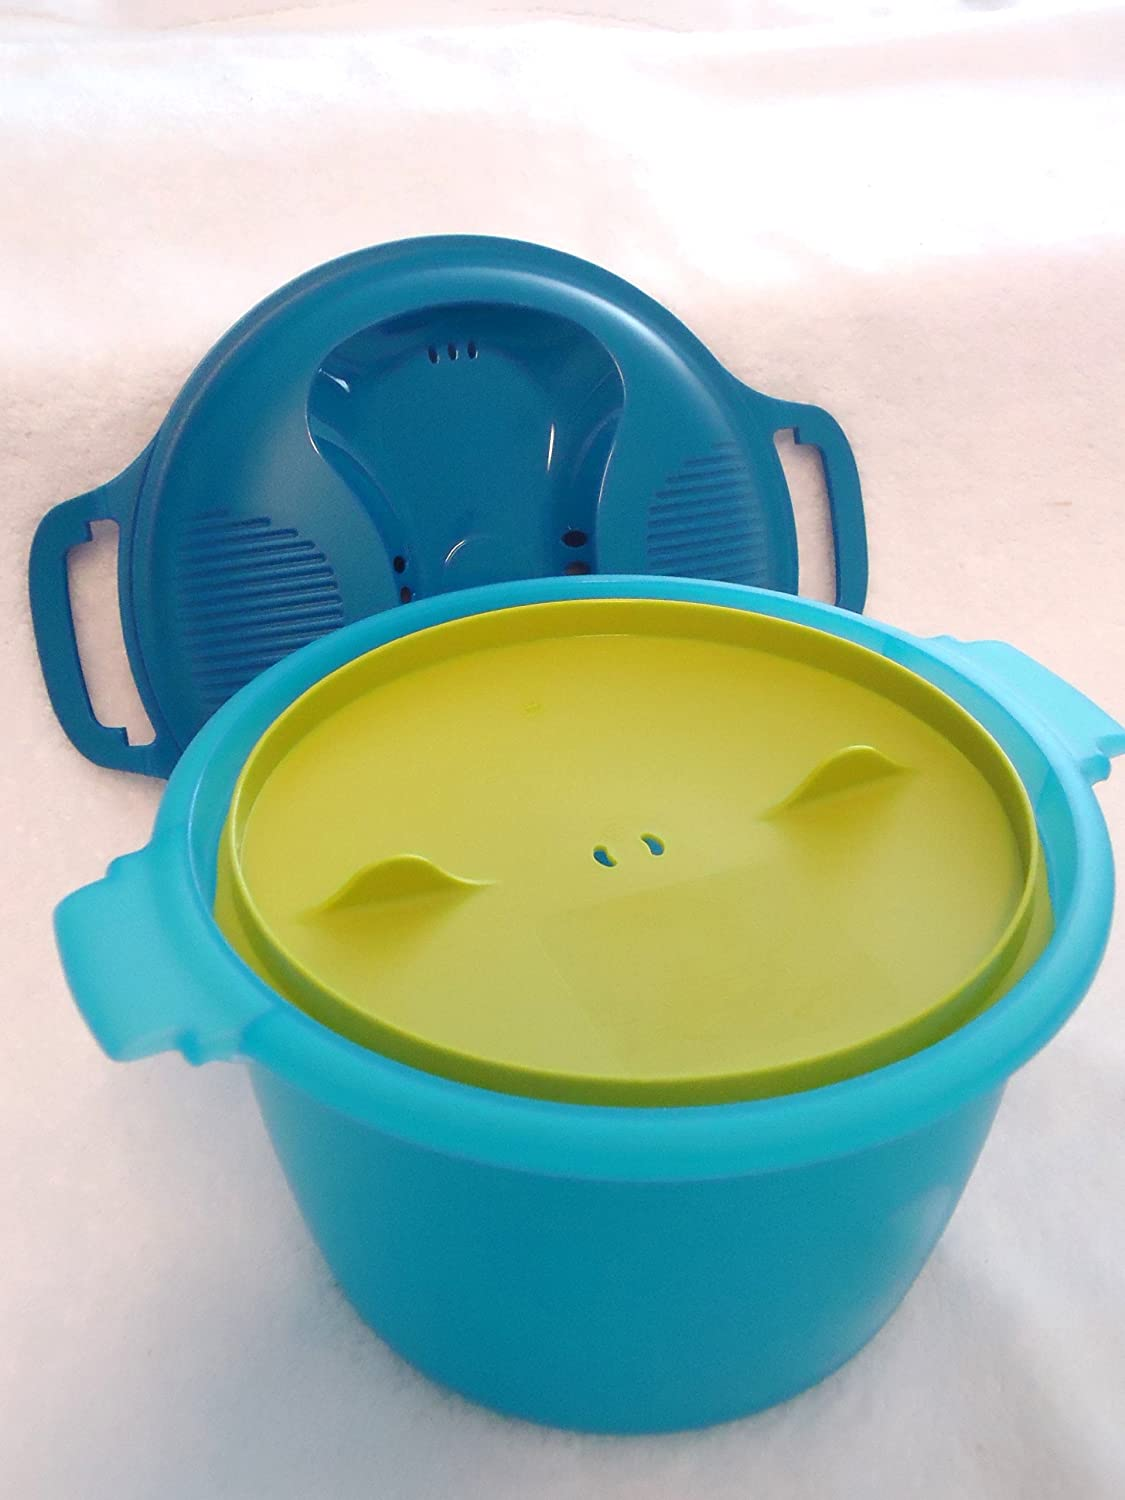 Tupperware Large 9.25 Cup Microwave Rice Maker in Blue